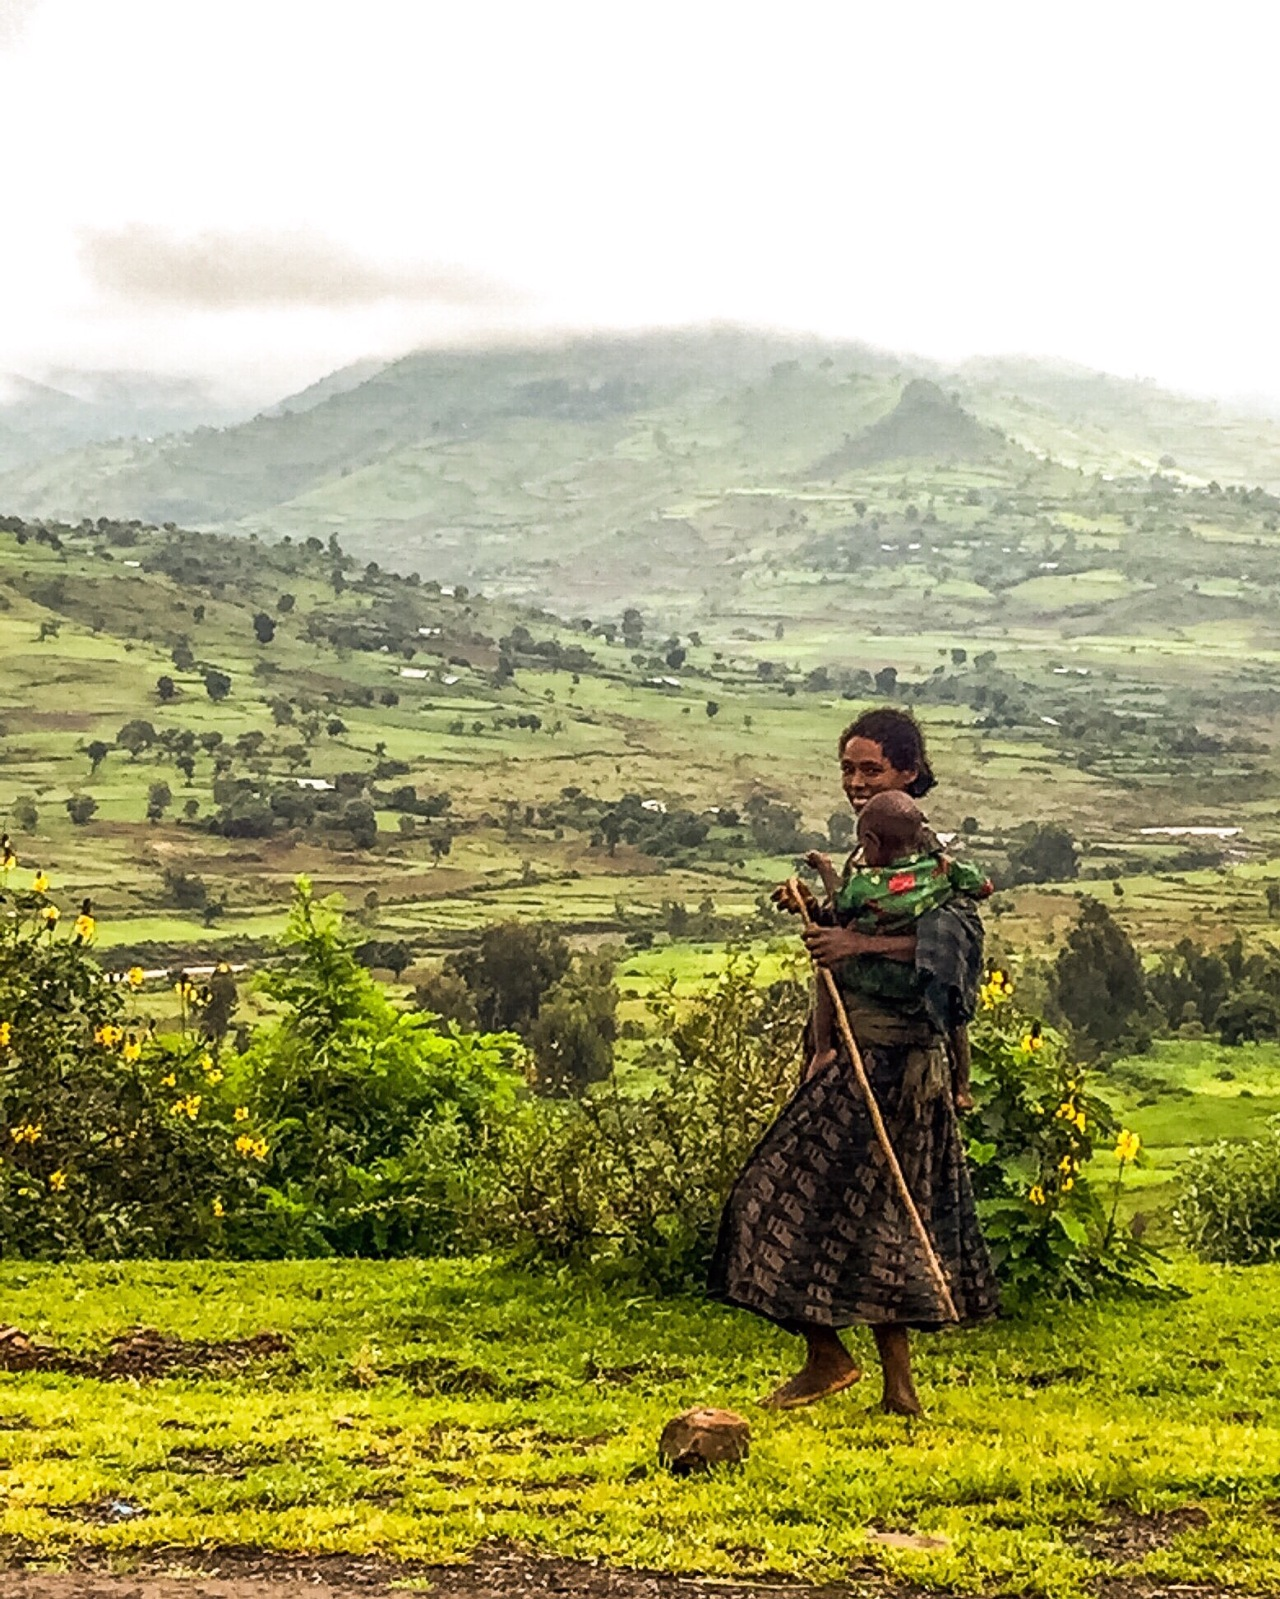 A portrait of Ethiopia